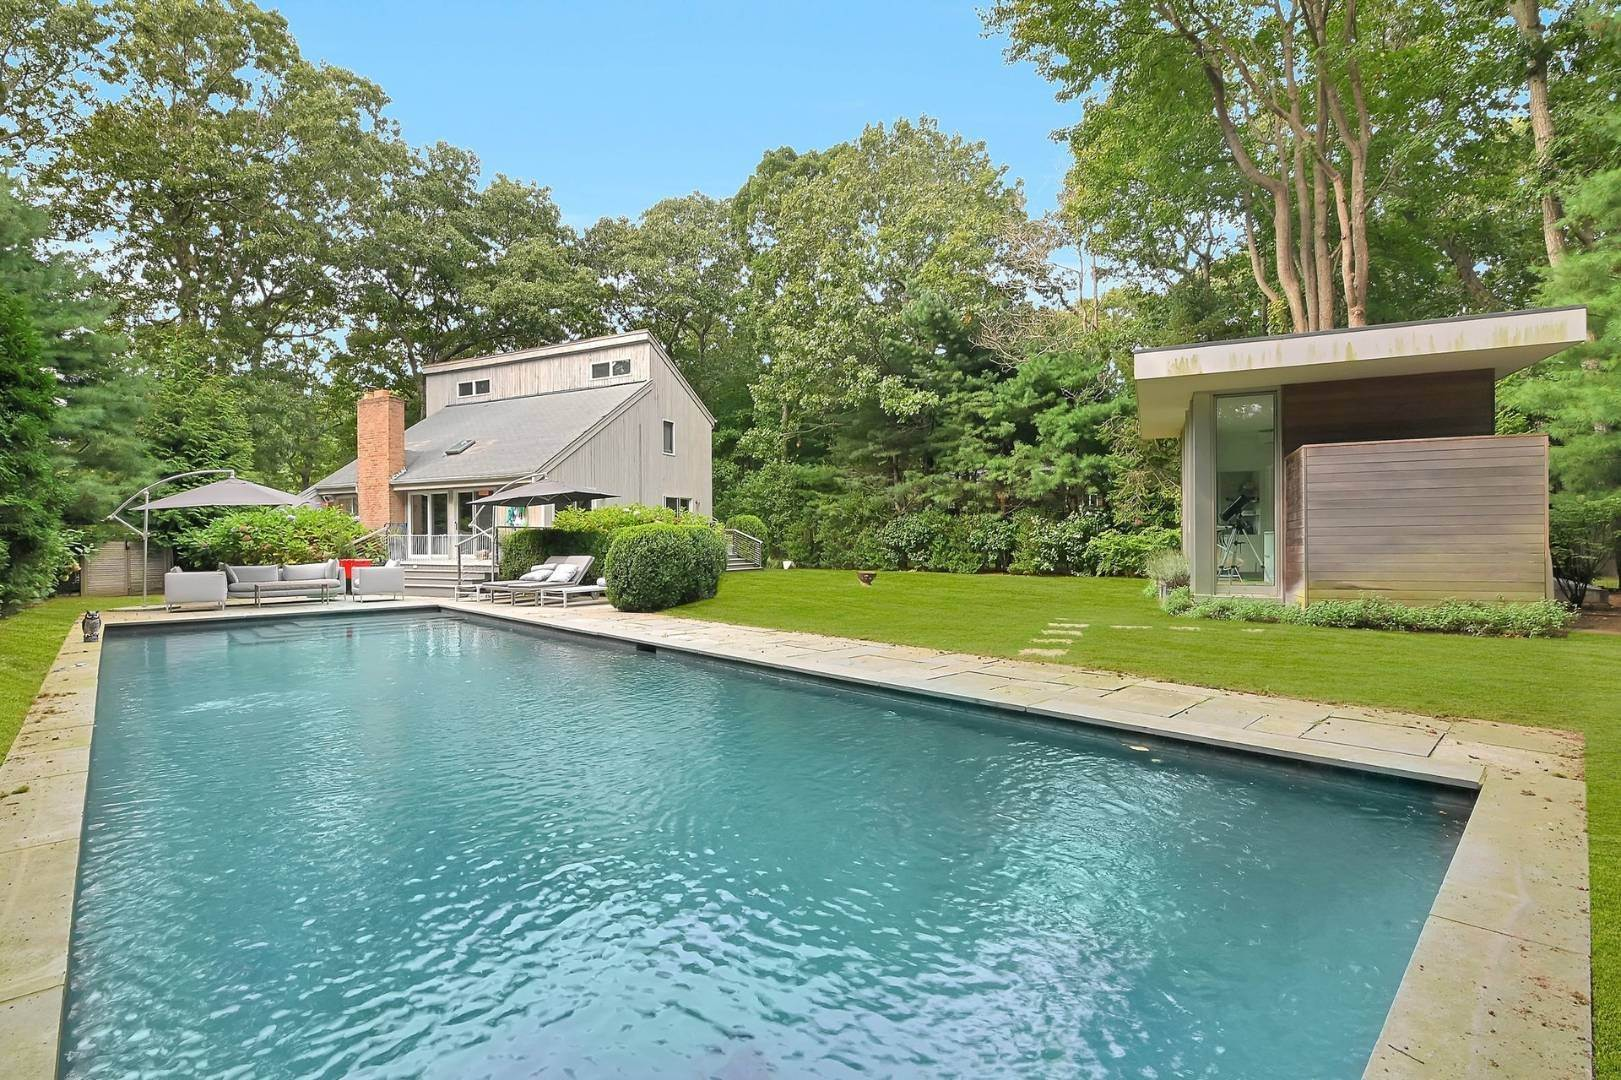 Single Family Home for Sale at Cool Beachy Modern In East Hampton 19 Waterhole Road, East Hampton, NY 11937